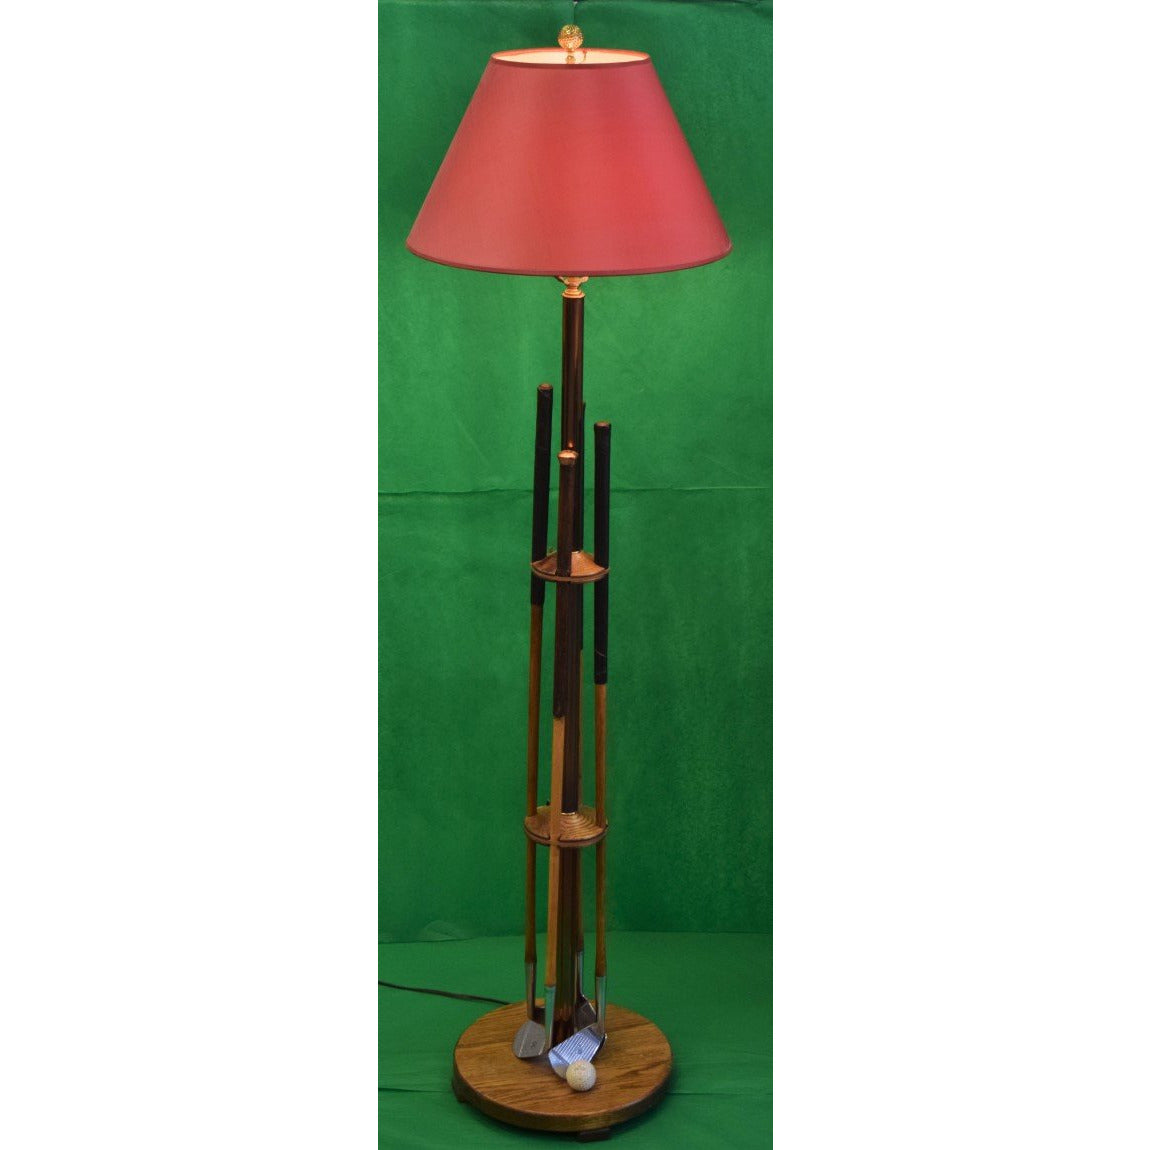 Country Club Golfer 4 Irons Floor Lamp